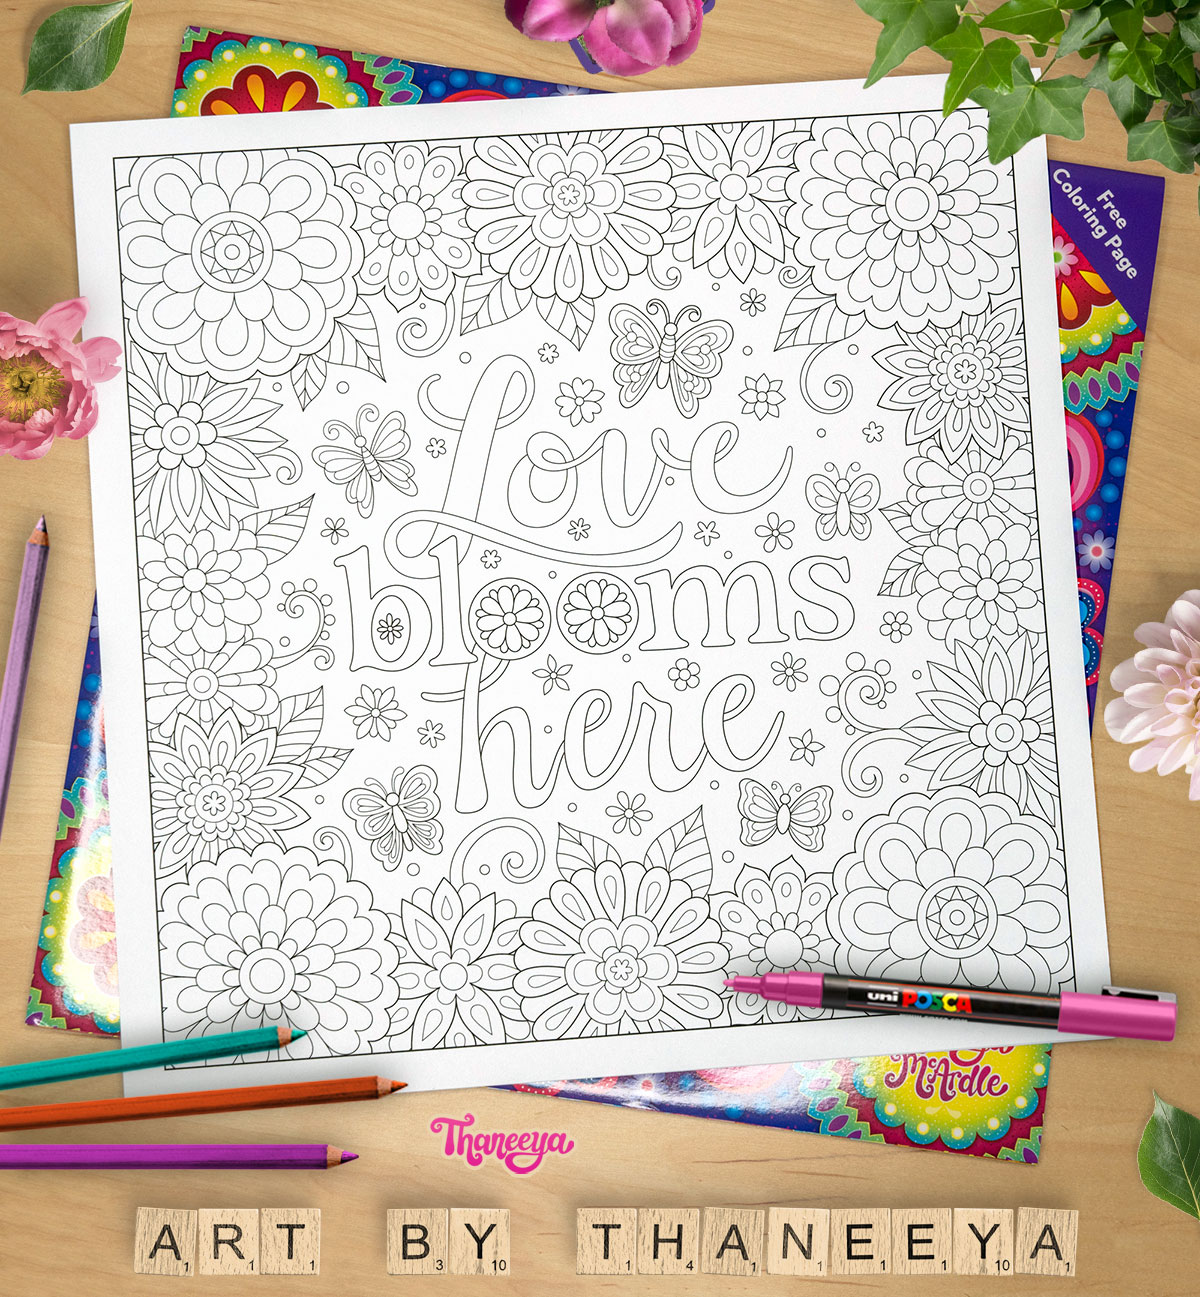 Love blooms here - Coloring page from Thaneeya McArdle's It's All Good 2020 Calendar